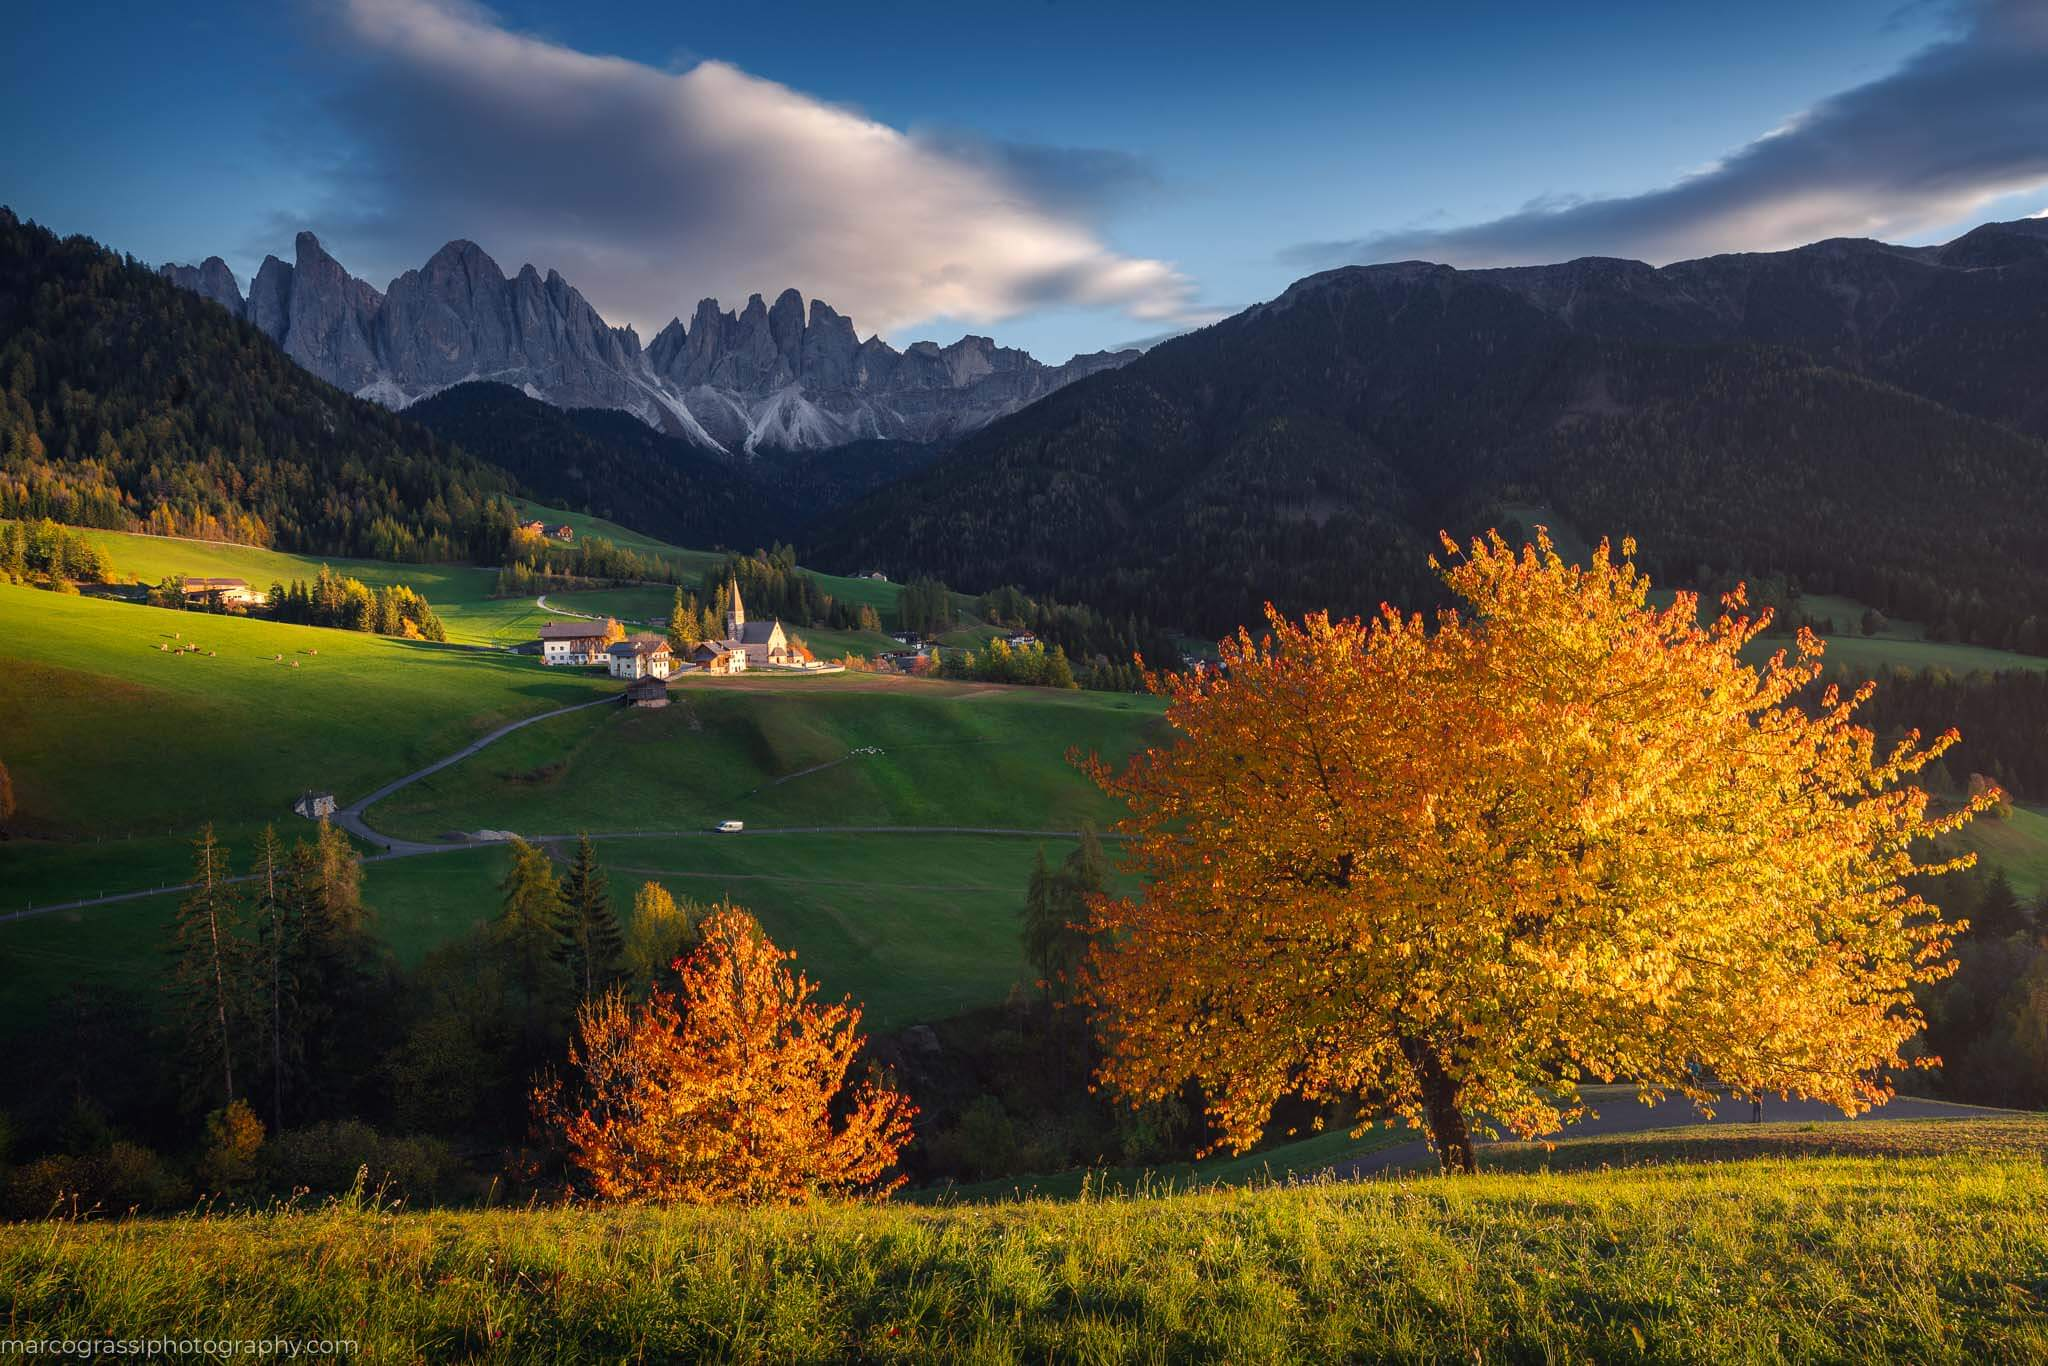 Sunset in Val di Funes during the autumn Dolomites Photo Tour